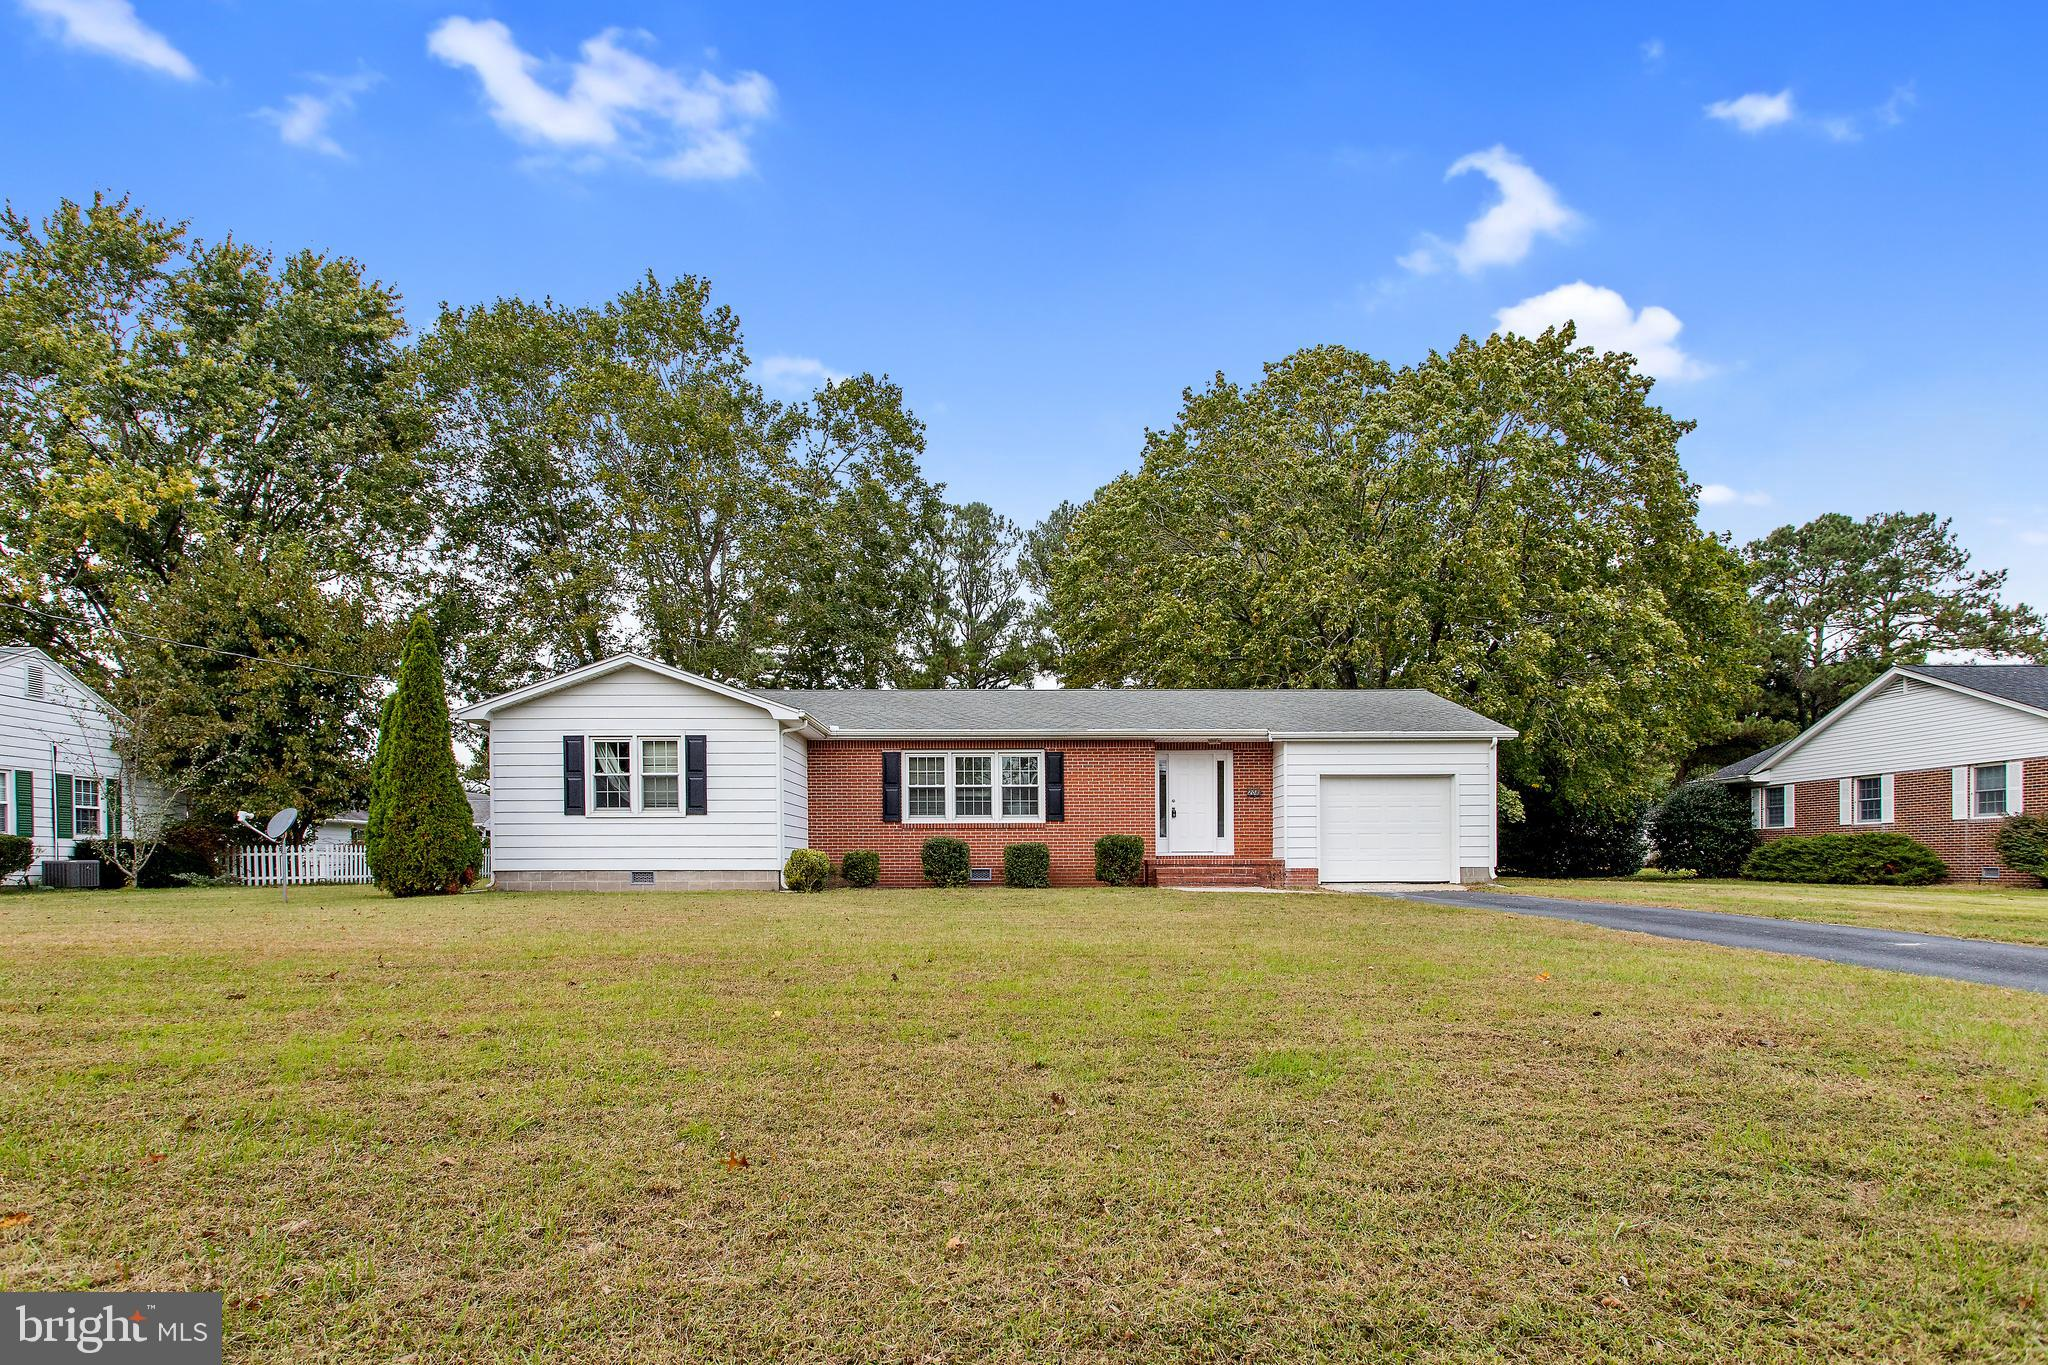 Cozy rancher in the lovely town of Snow Hill! Welcome home to this quaint home centrally located wit